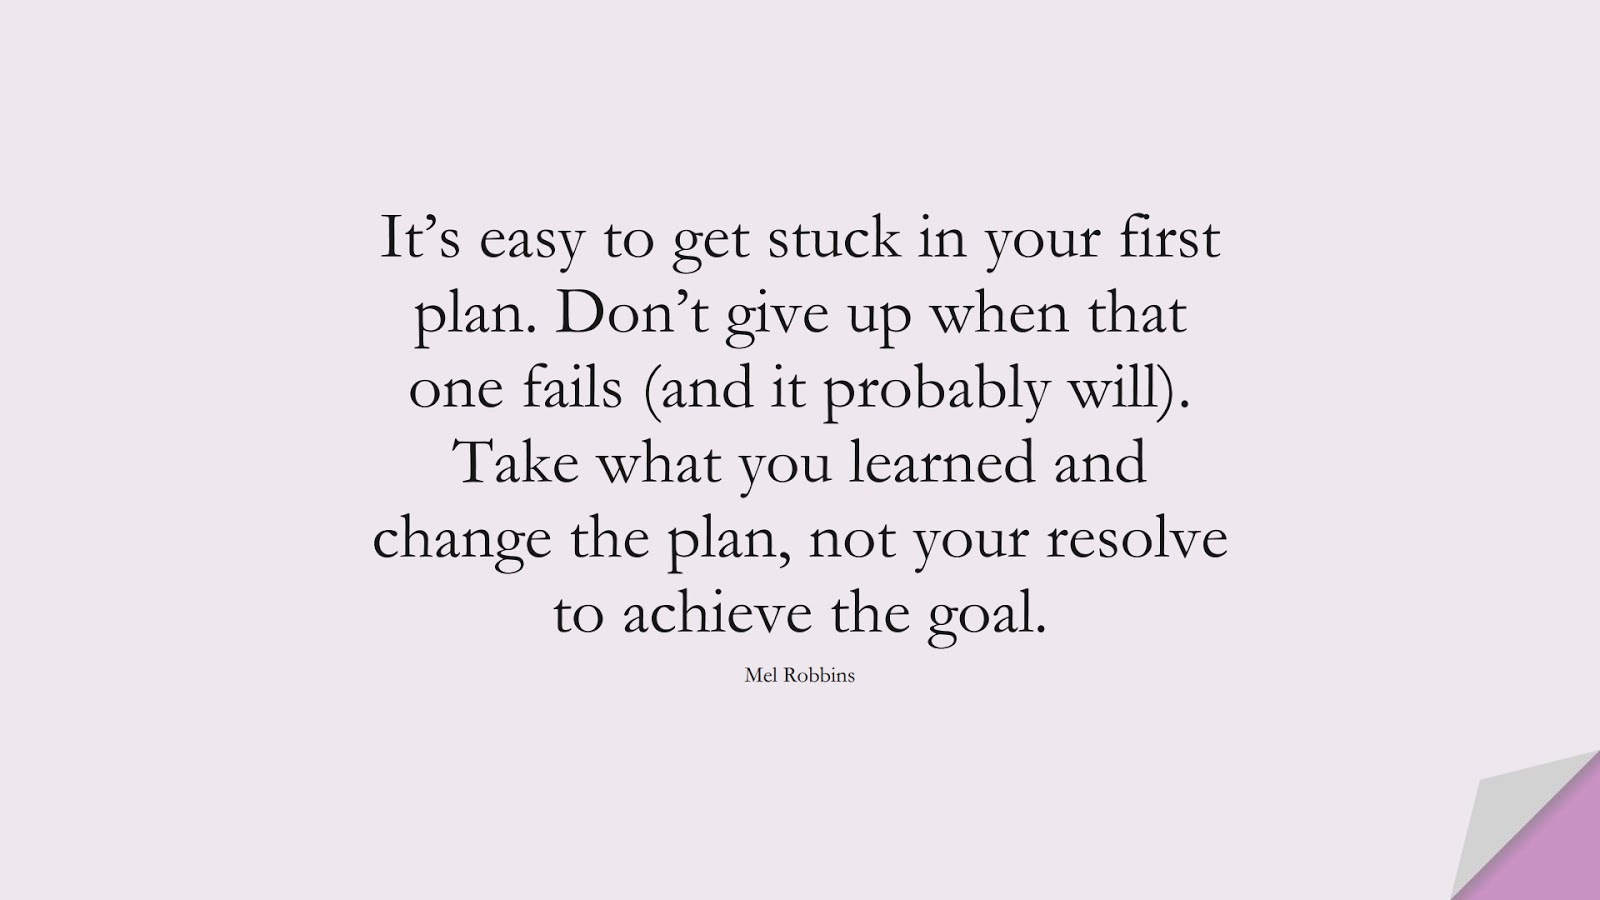 It's easy to get stuck in your first plan. Don't give up when that one fails (and it probably will). Take what you learned and change the plan, not your resolve to achieve the goal. (Mel Robbins);  #NeverGiveUpQuotes